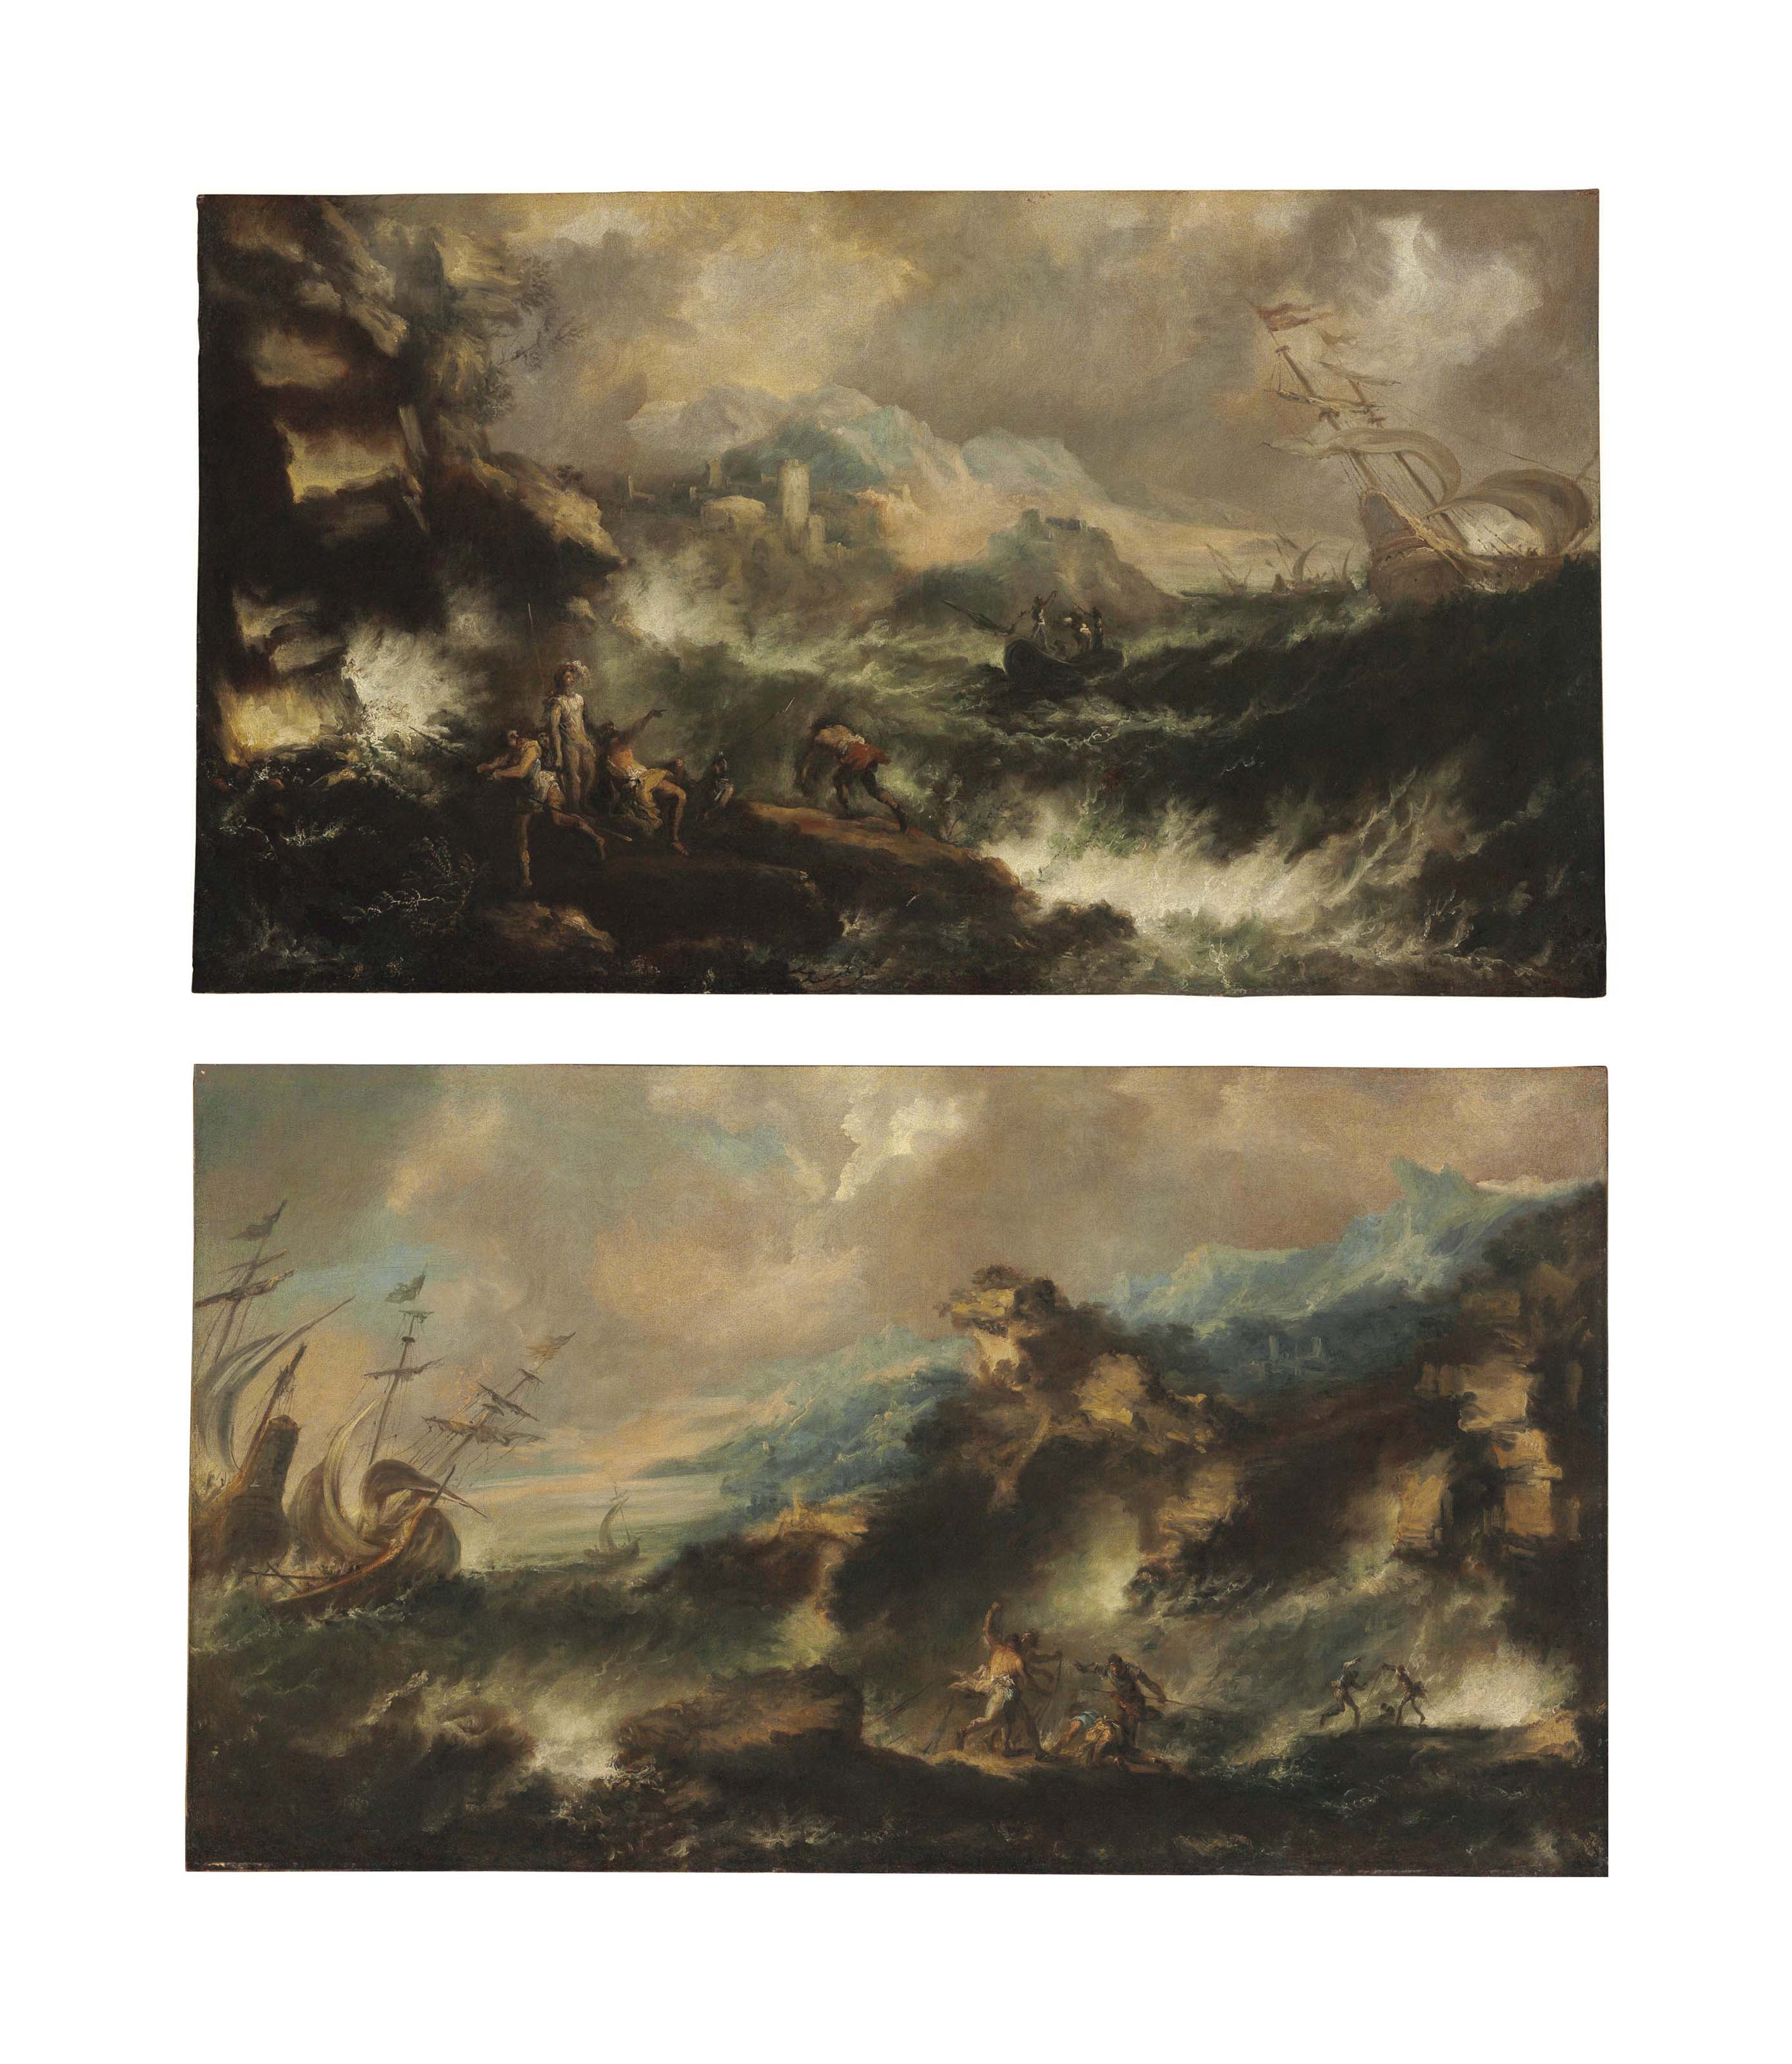 A shipwreck off a rocky coast with survivors on the shore, a fortified town beyond; and A shipwreck off a rocky coast with survivors on the shore